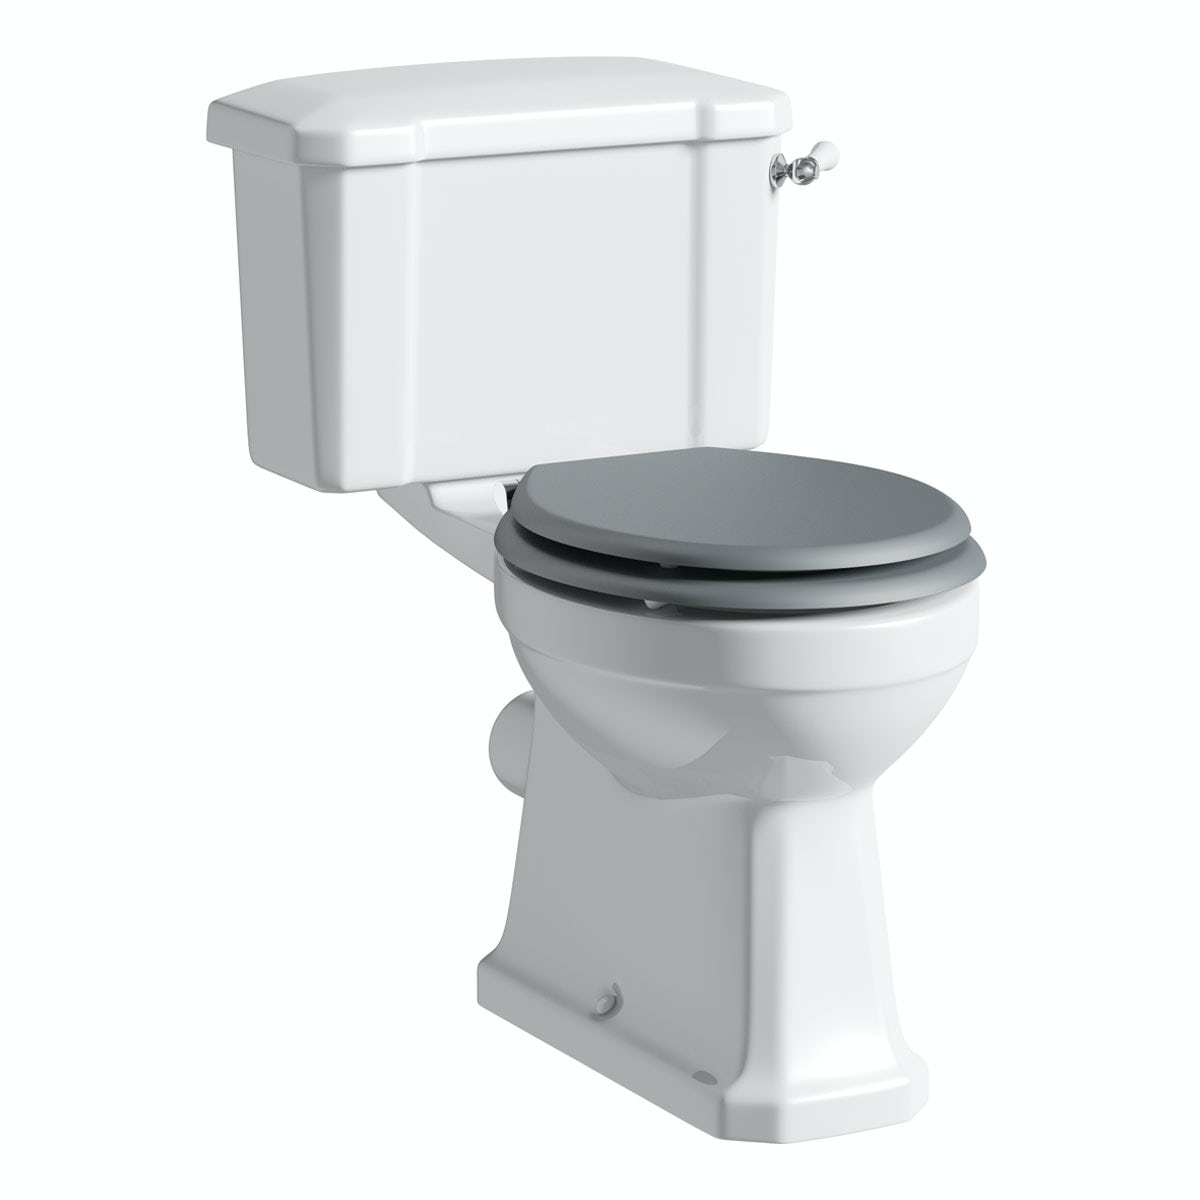 The Bath Co. Camberley close coupled toilet inc grey soft close seat with pan connector